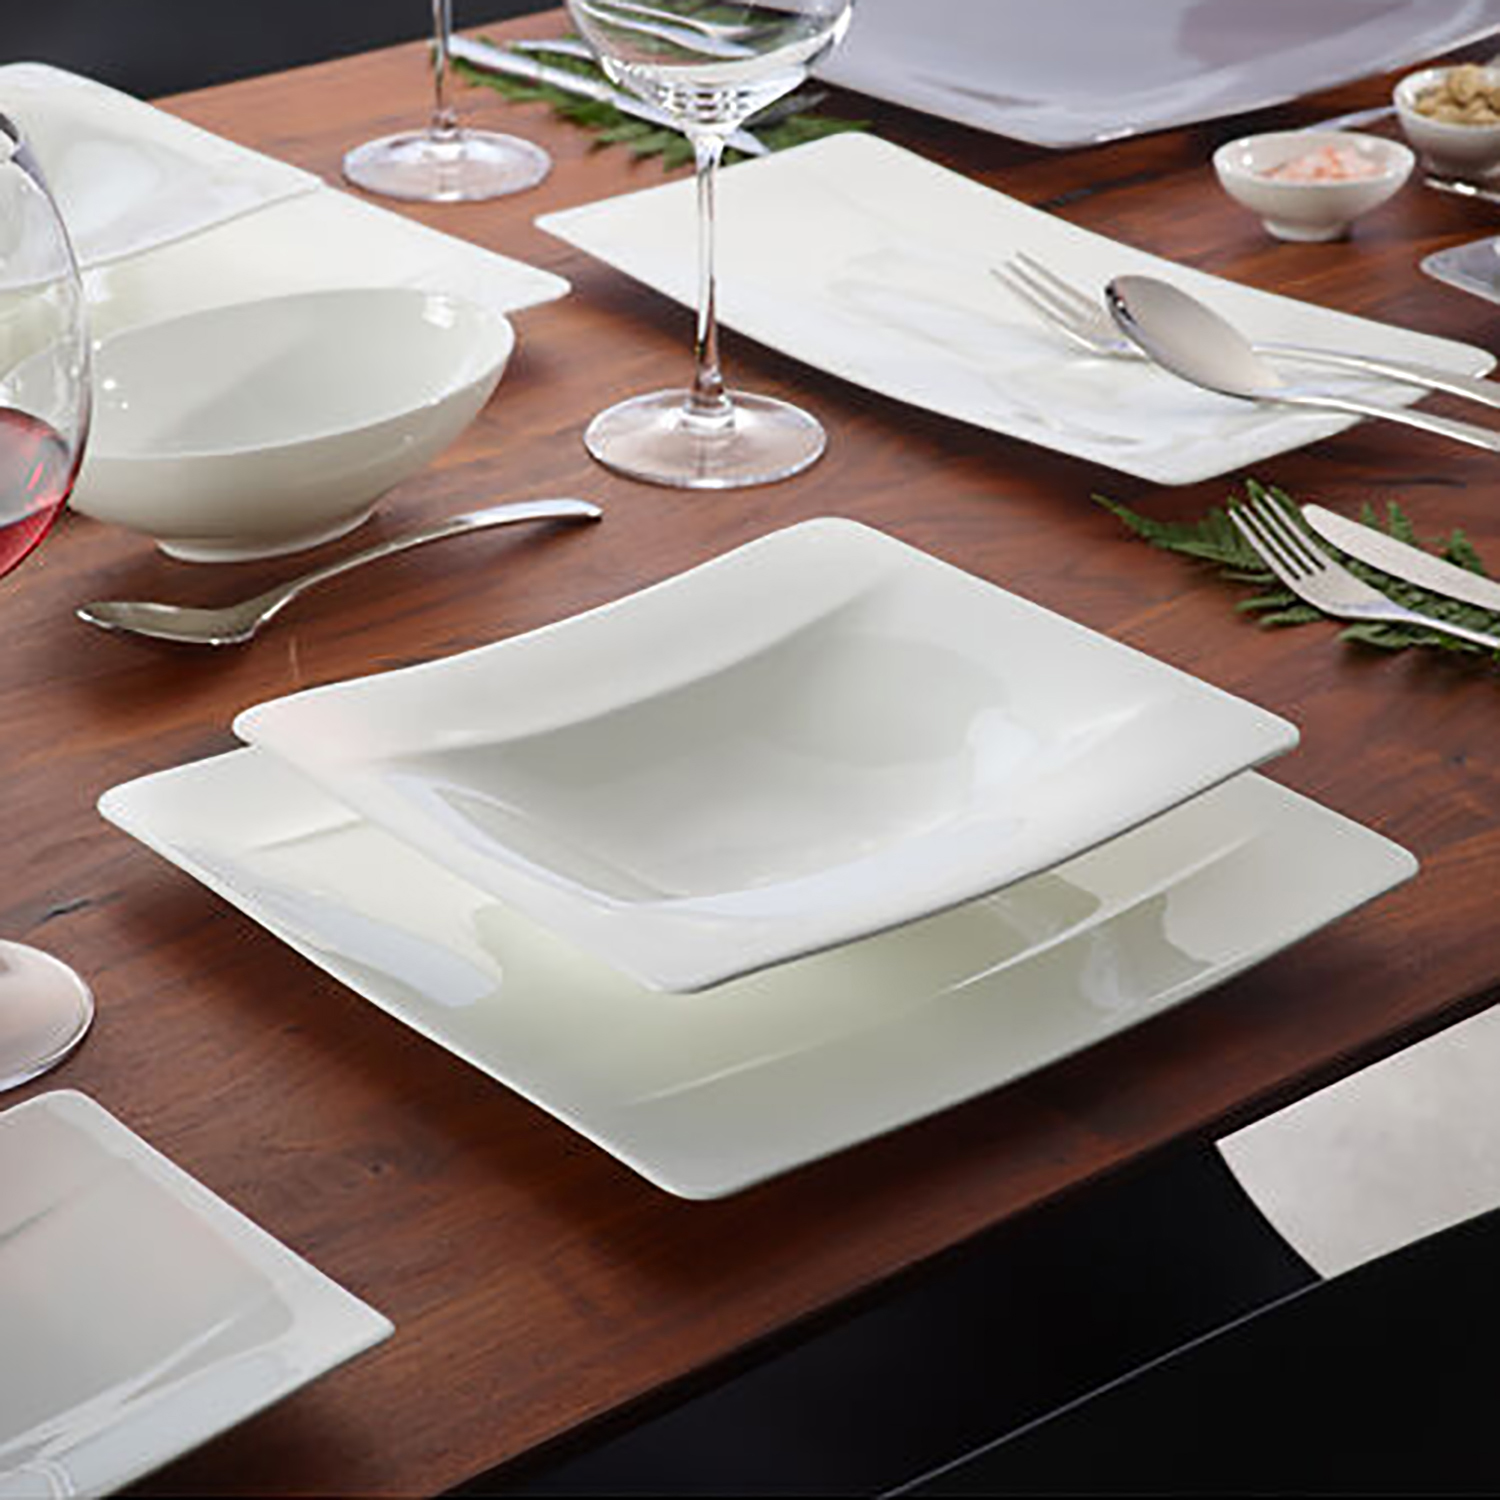 4 Piece Place Setting (Square Shape)